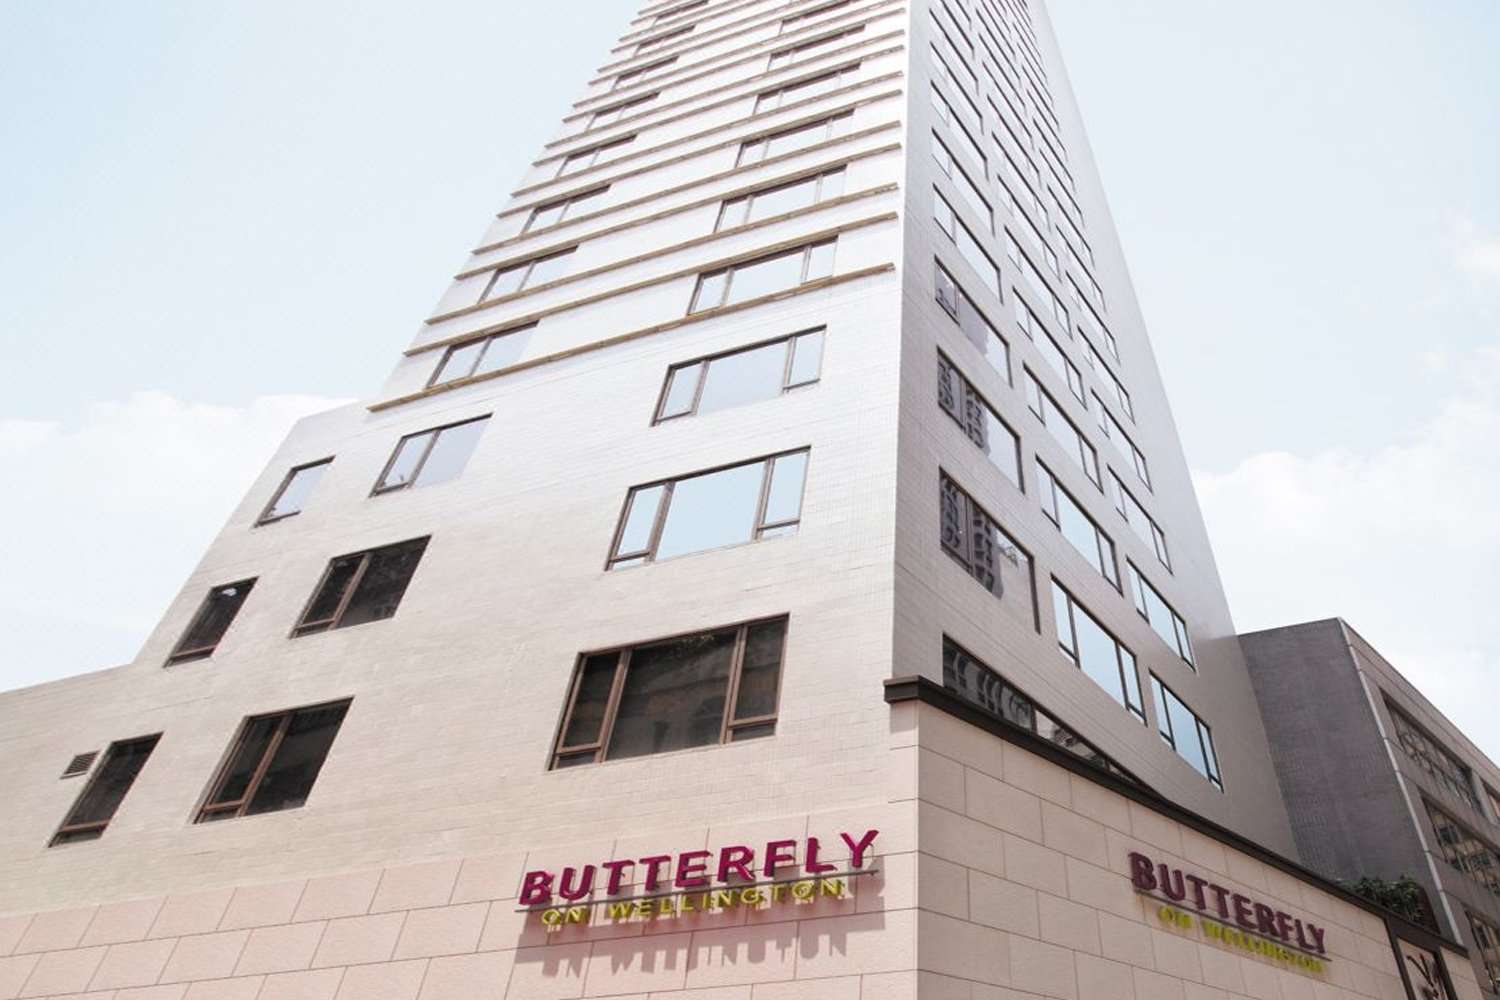 Khách sạn Butterfly on Wellington Boutique Hotel Centra